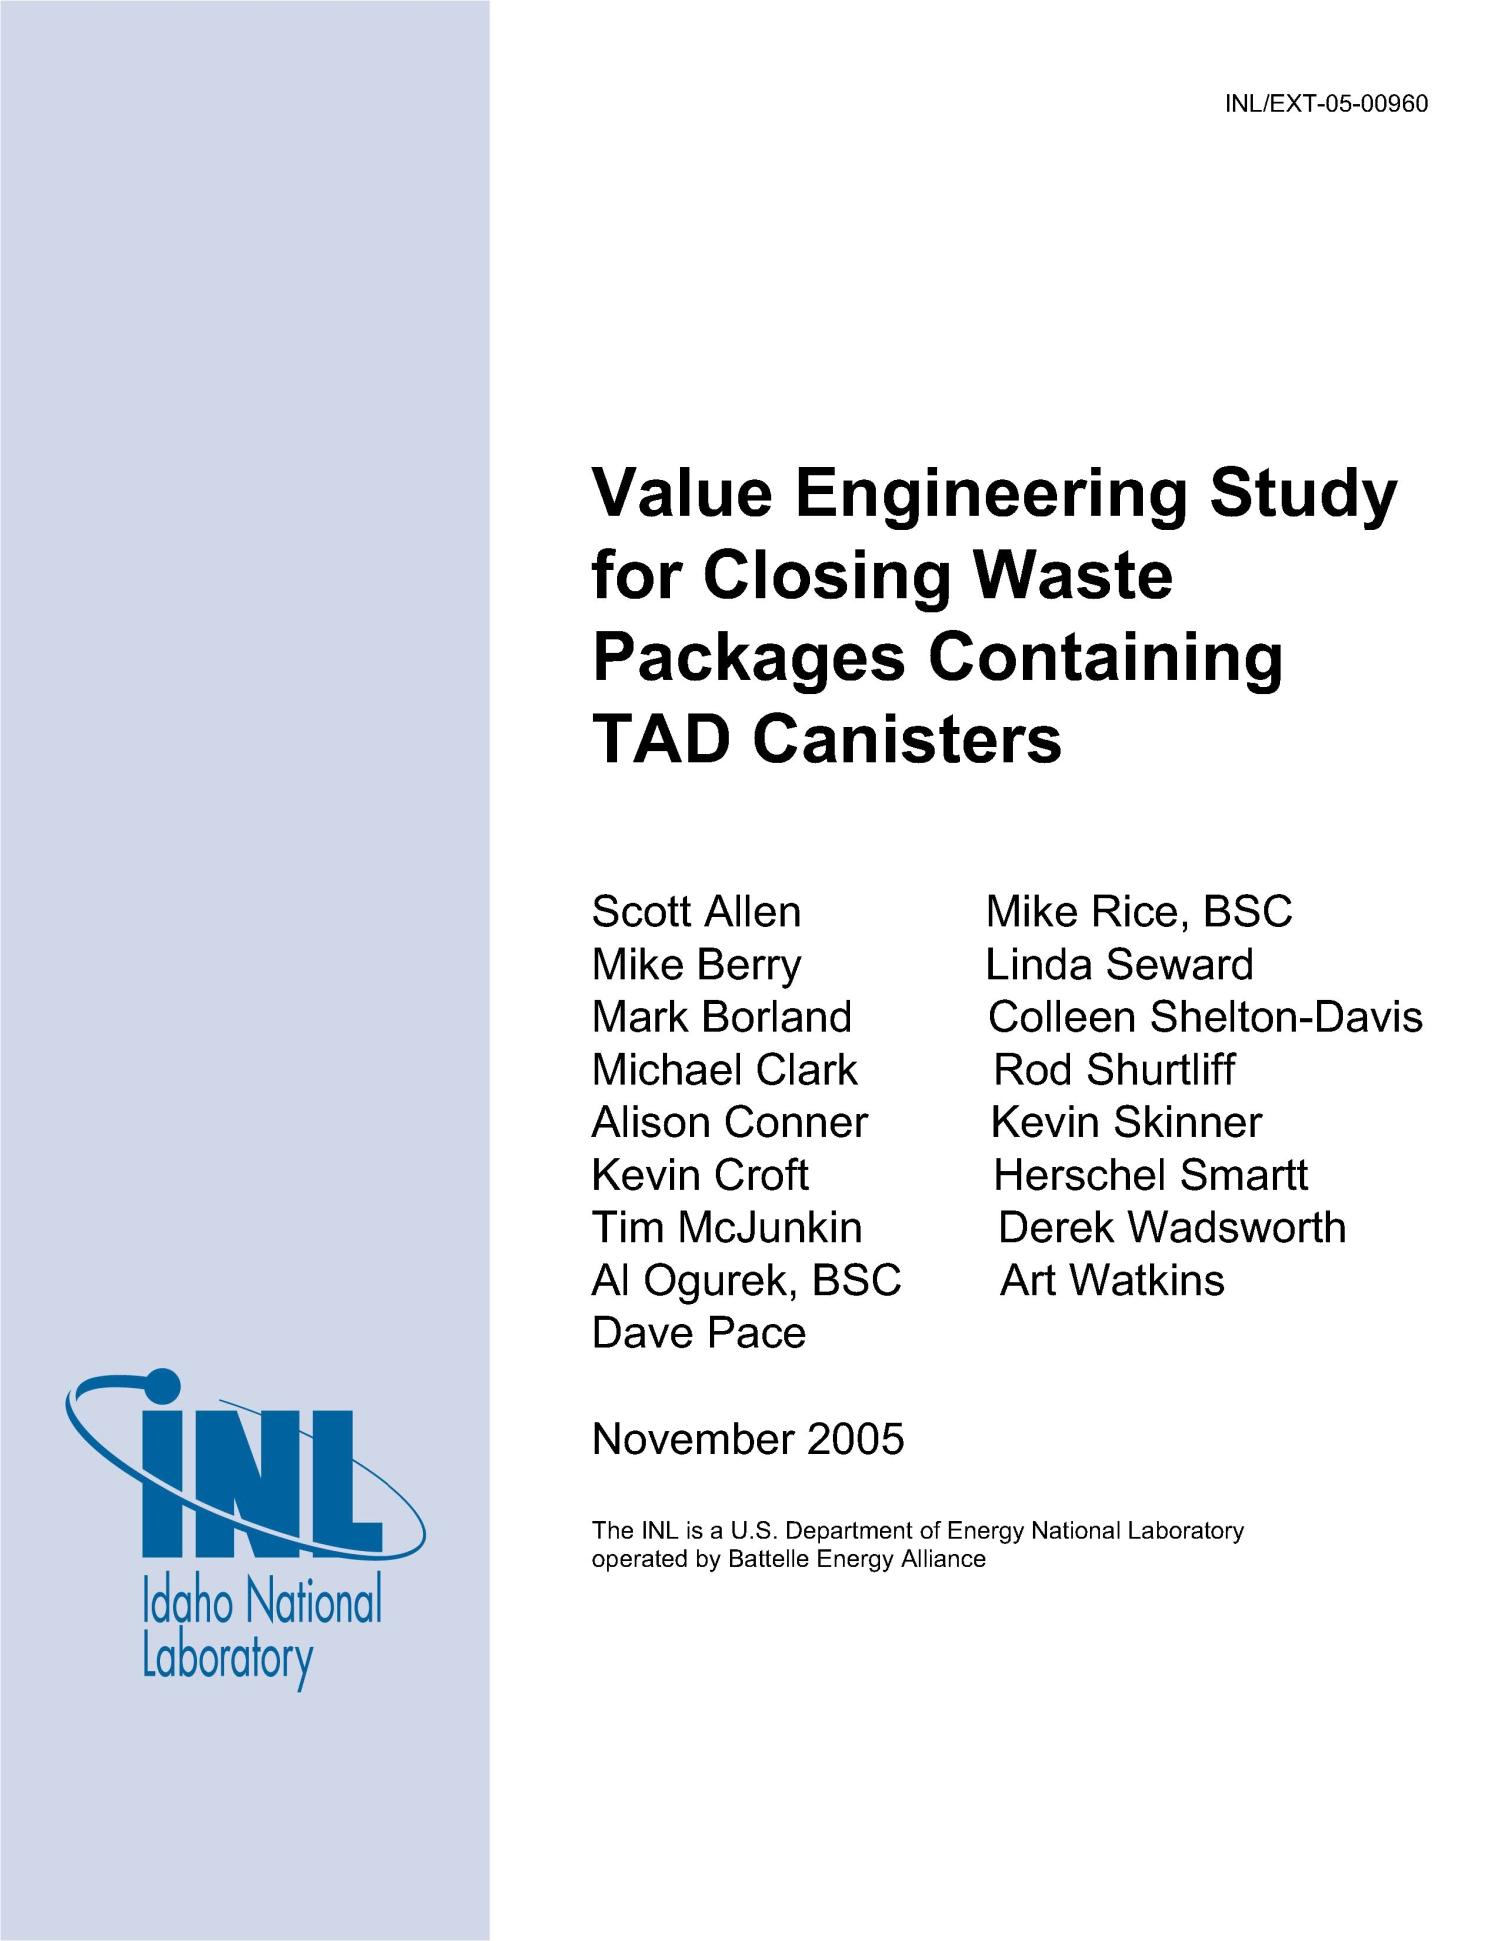 Value Engineering Study for Closing Waste Packages Containing TAD Canisters                                                                                                      [Sequence #]: 1 of 32